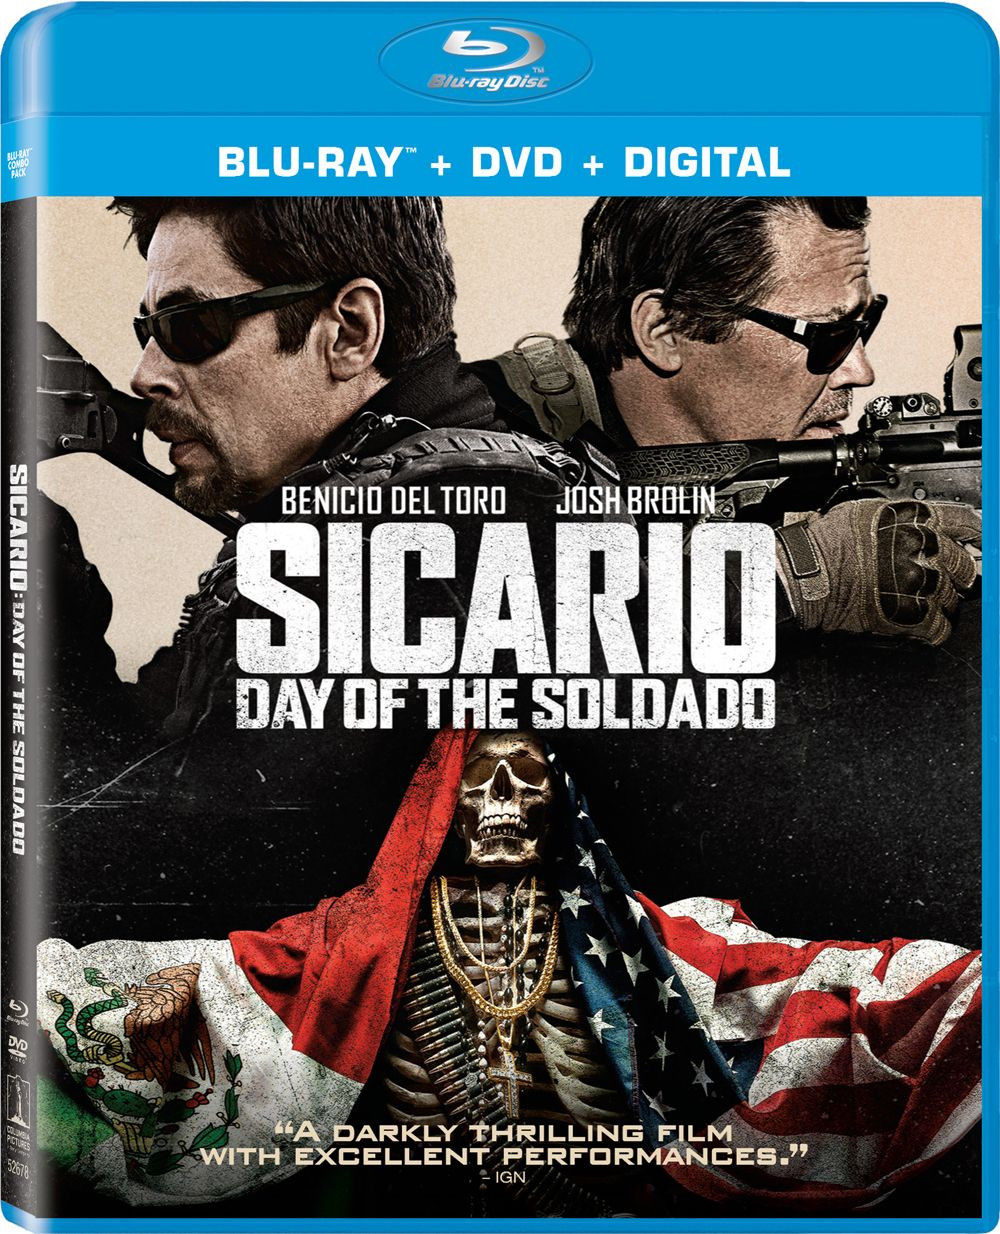 Sicario: Day of the Soldado Blu-ray Release Date and Details | Collider